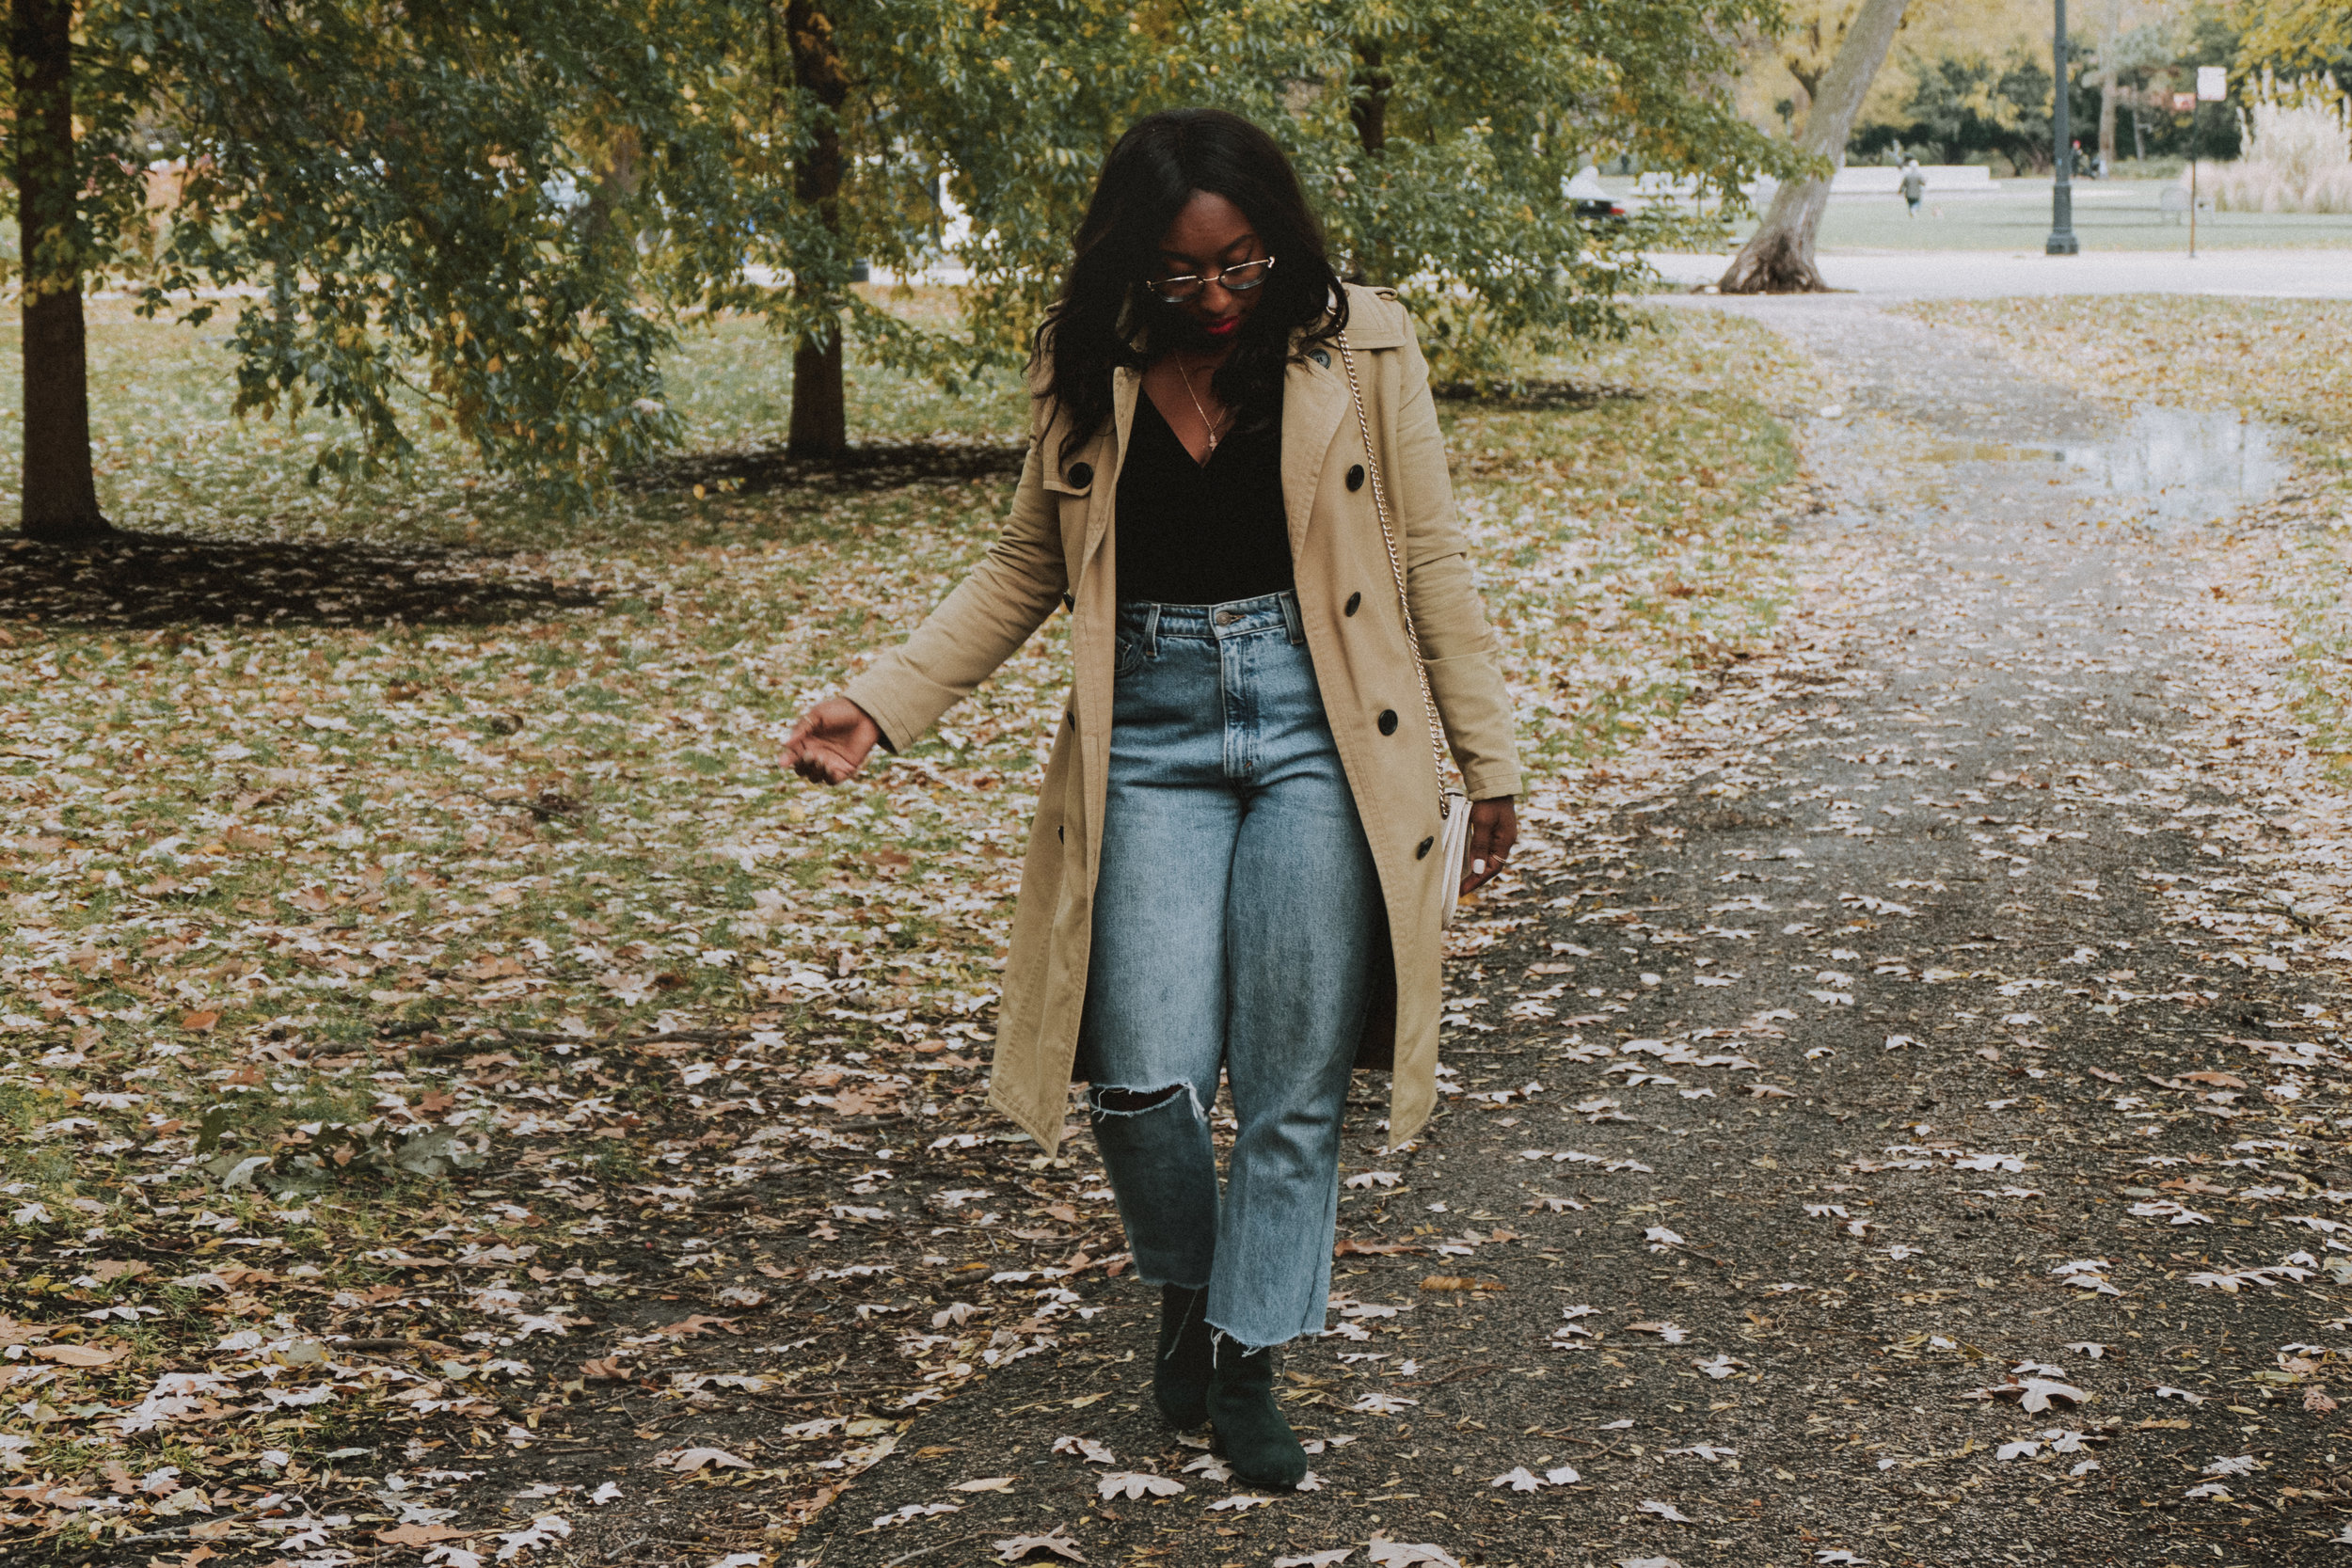 Trench coat outfit, mom jeans, suede boots, fall fashion outfits, fall fashion 2018, fall fashion trends 2018